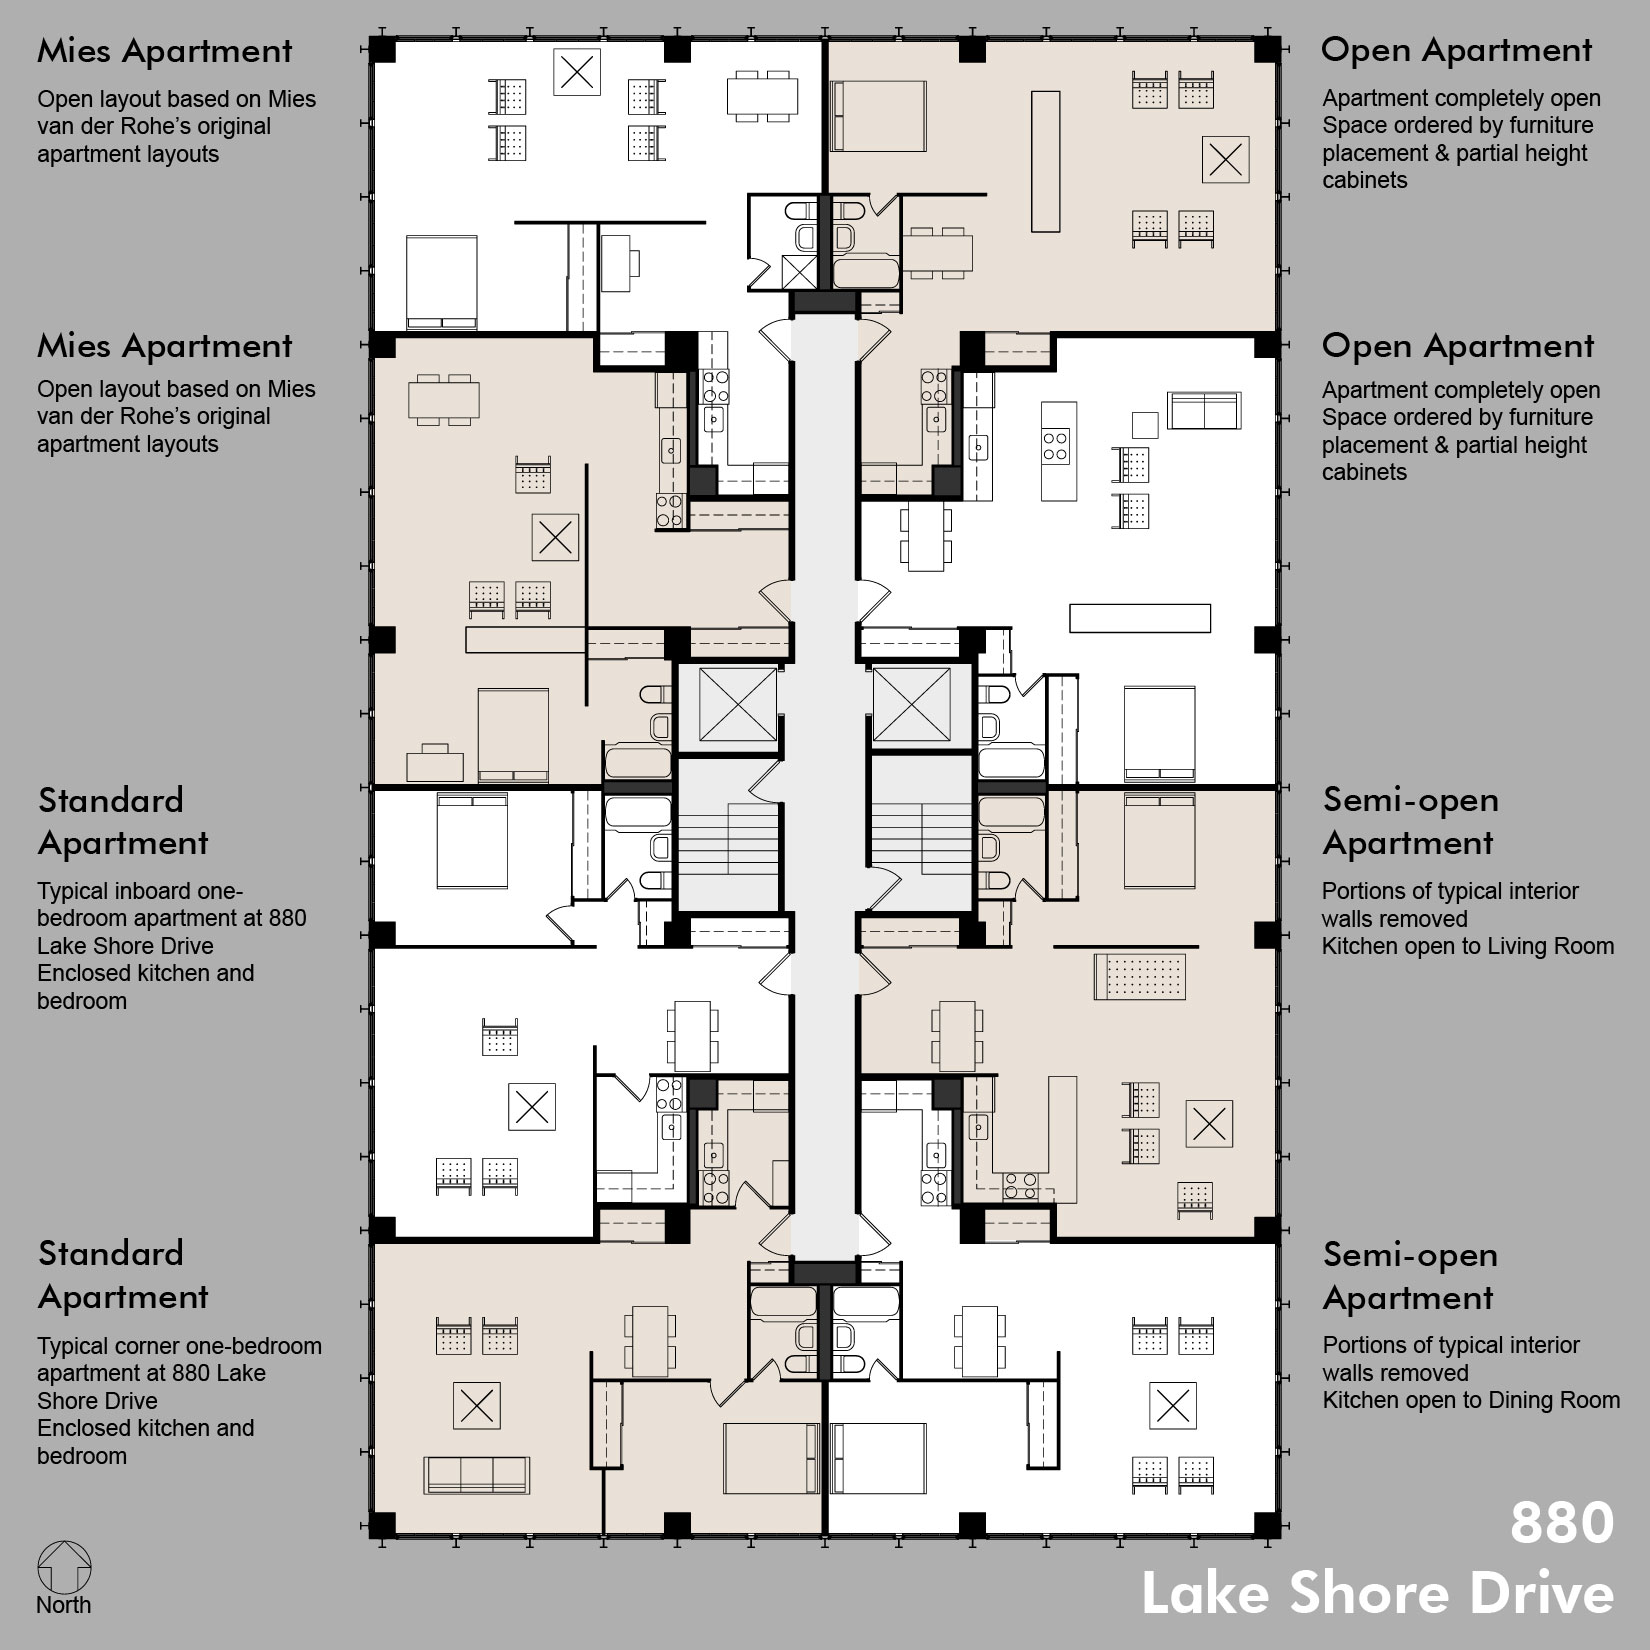 Apartment Floor Plans 880_floor_plans_including_standard_apt